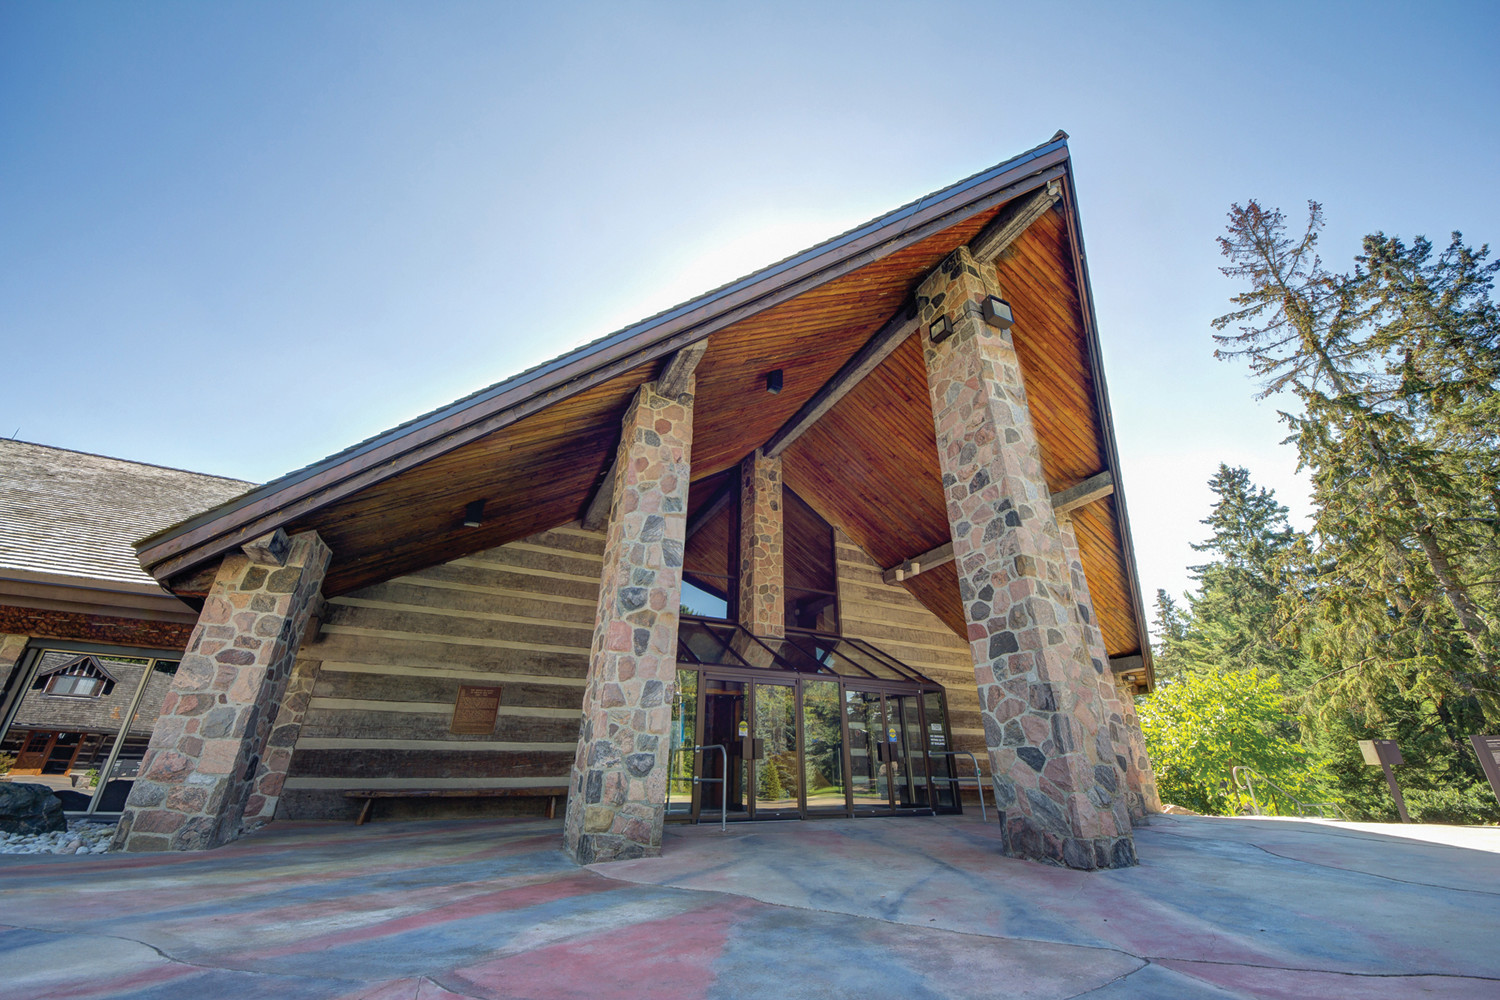 The McMichael Gallery Entrance